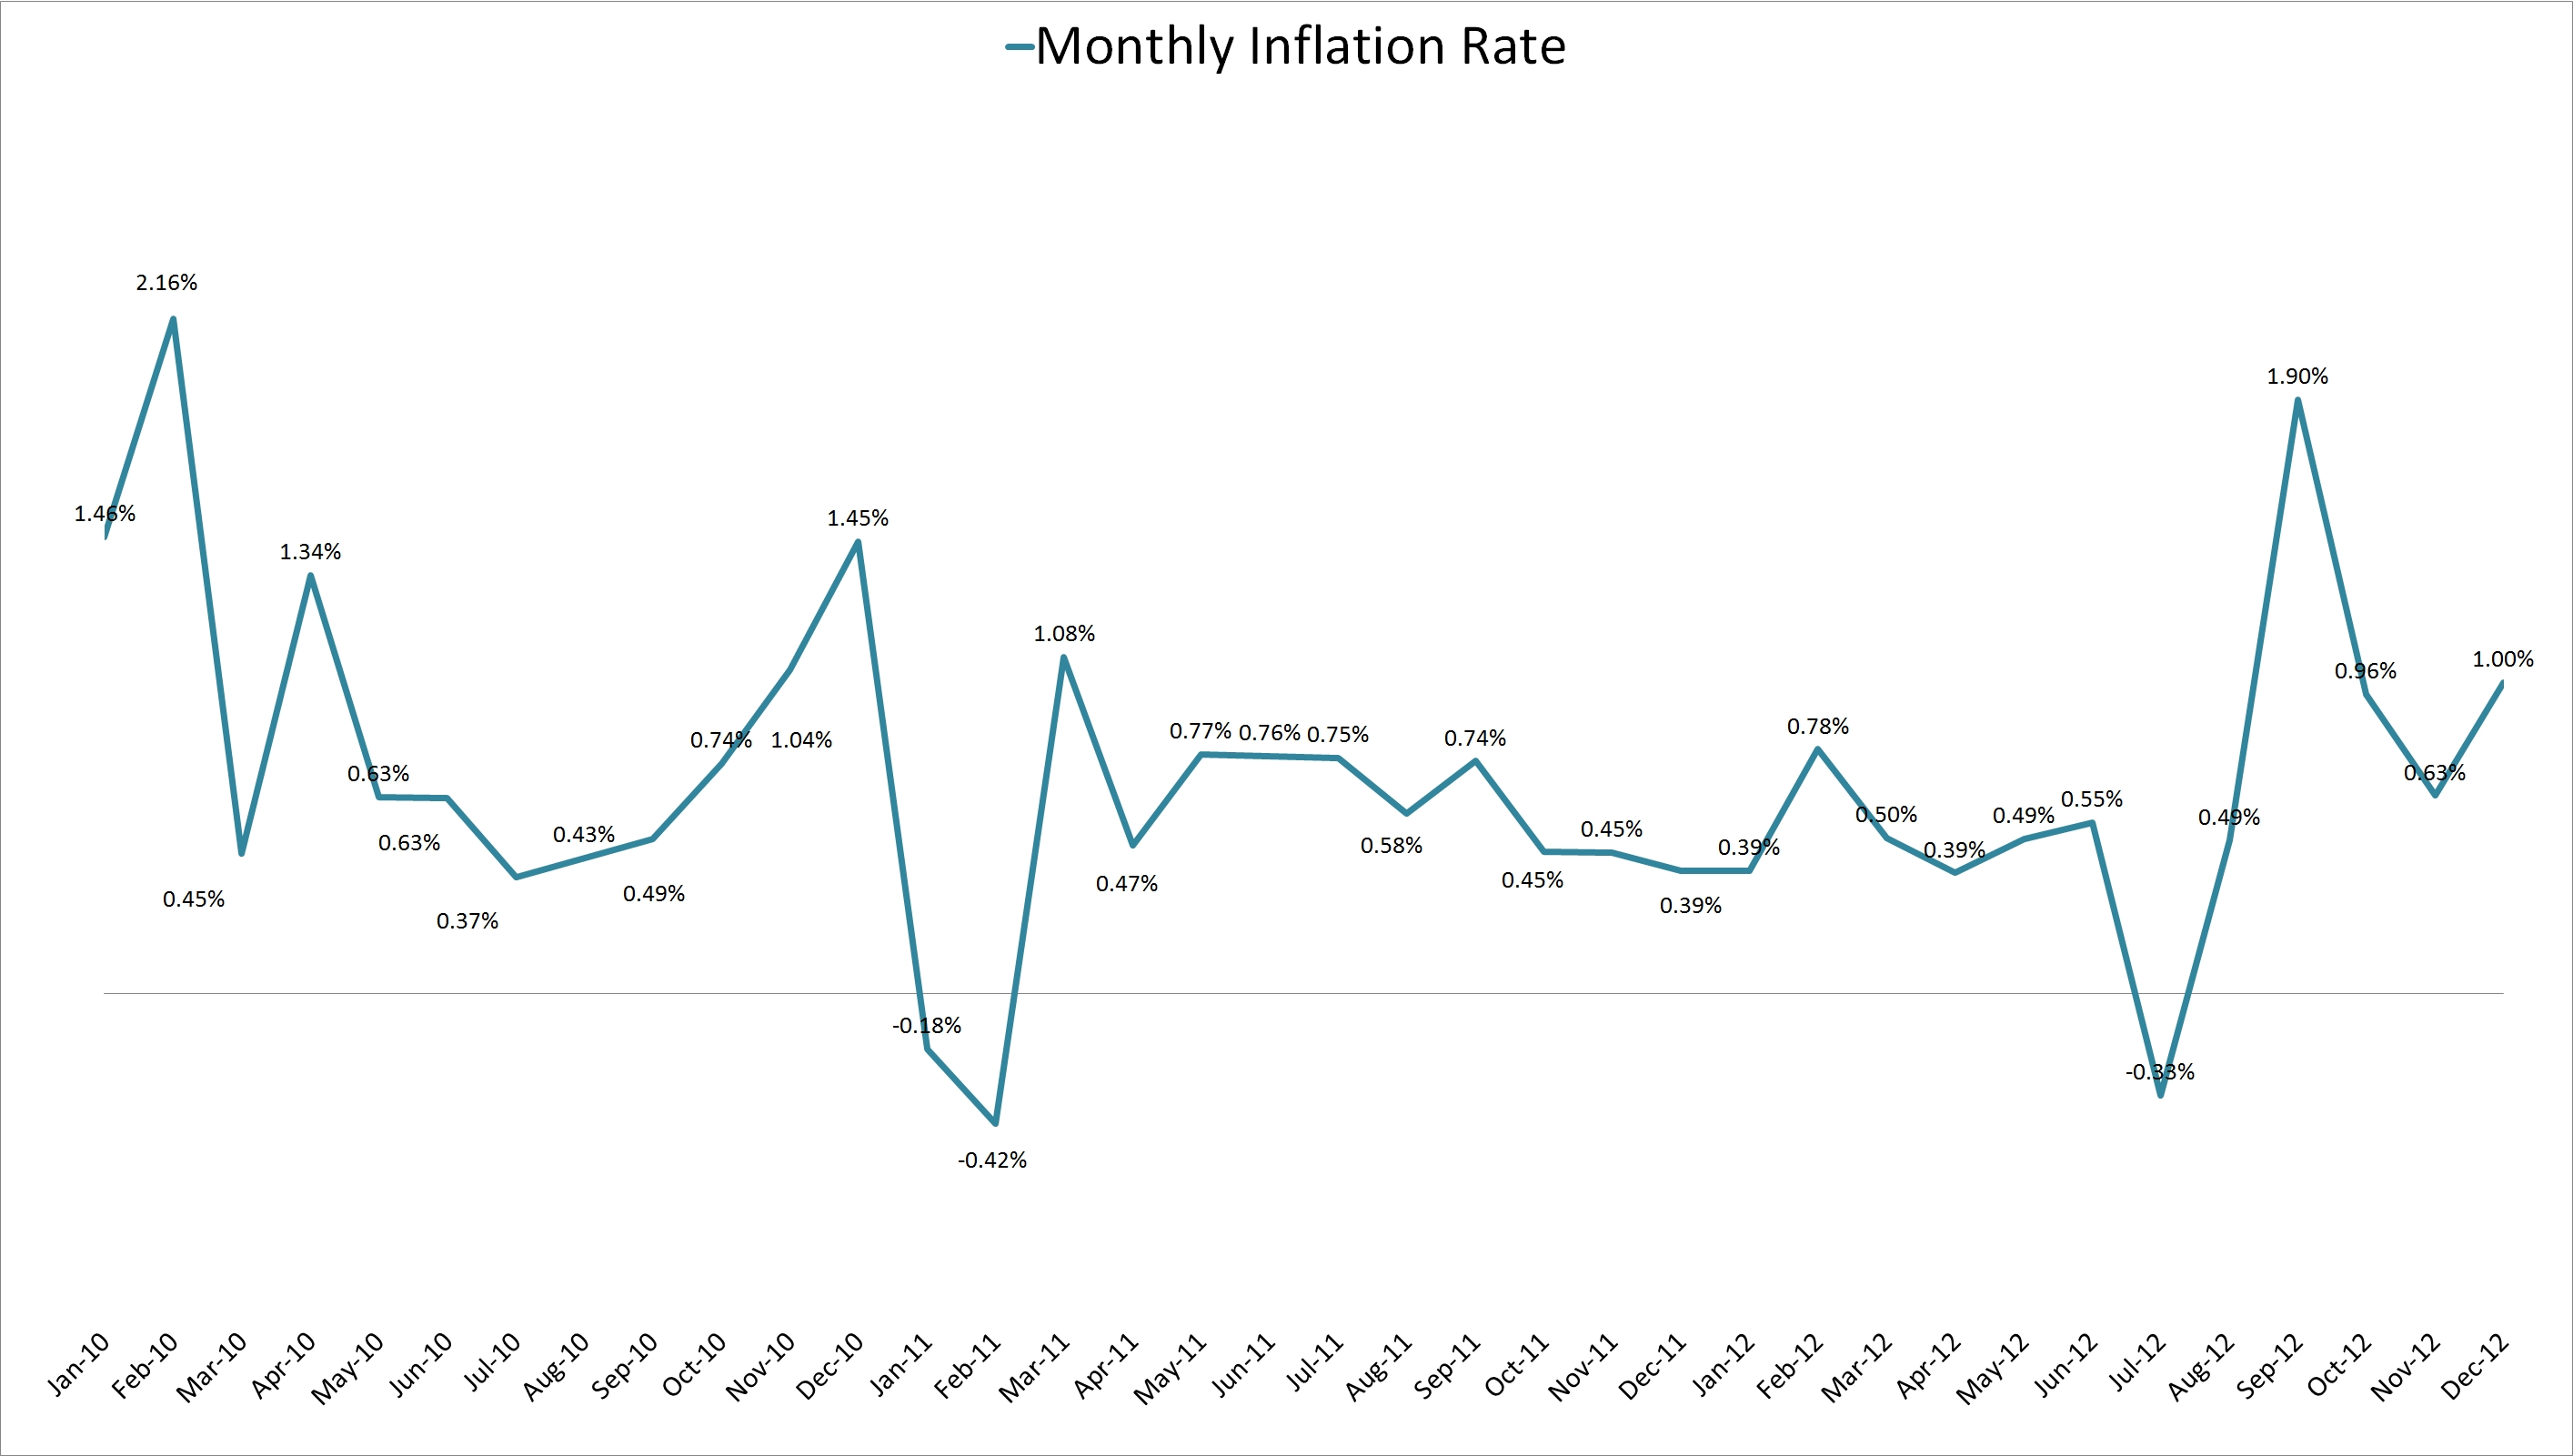 jamaica_monthly_inflation